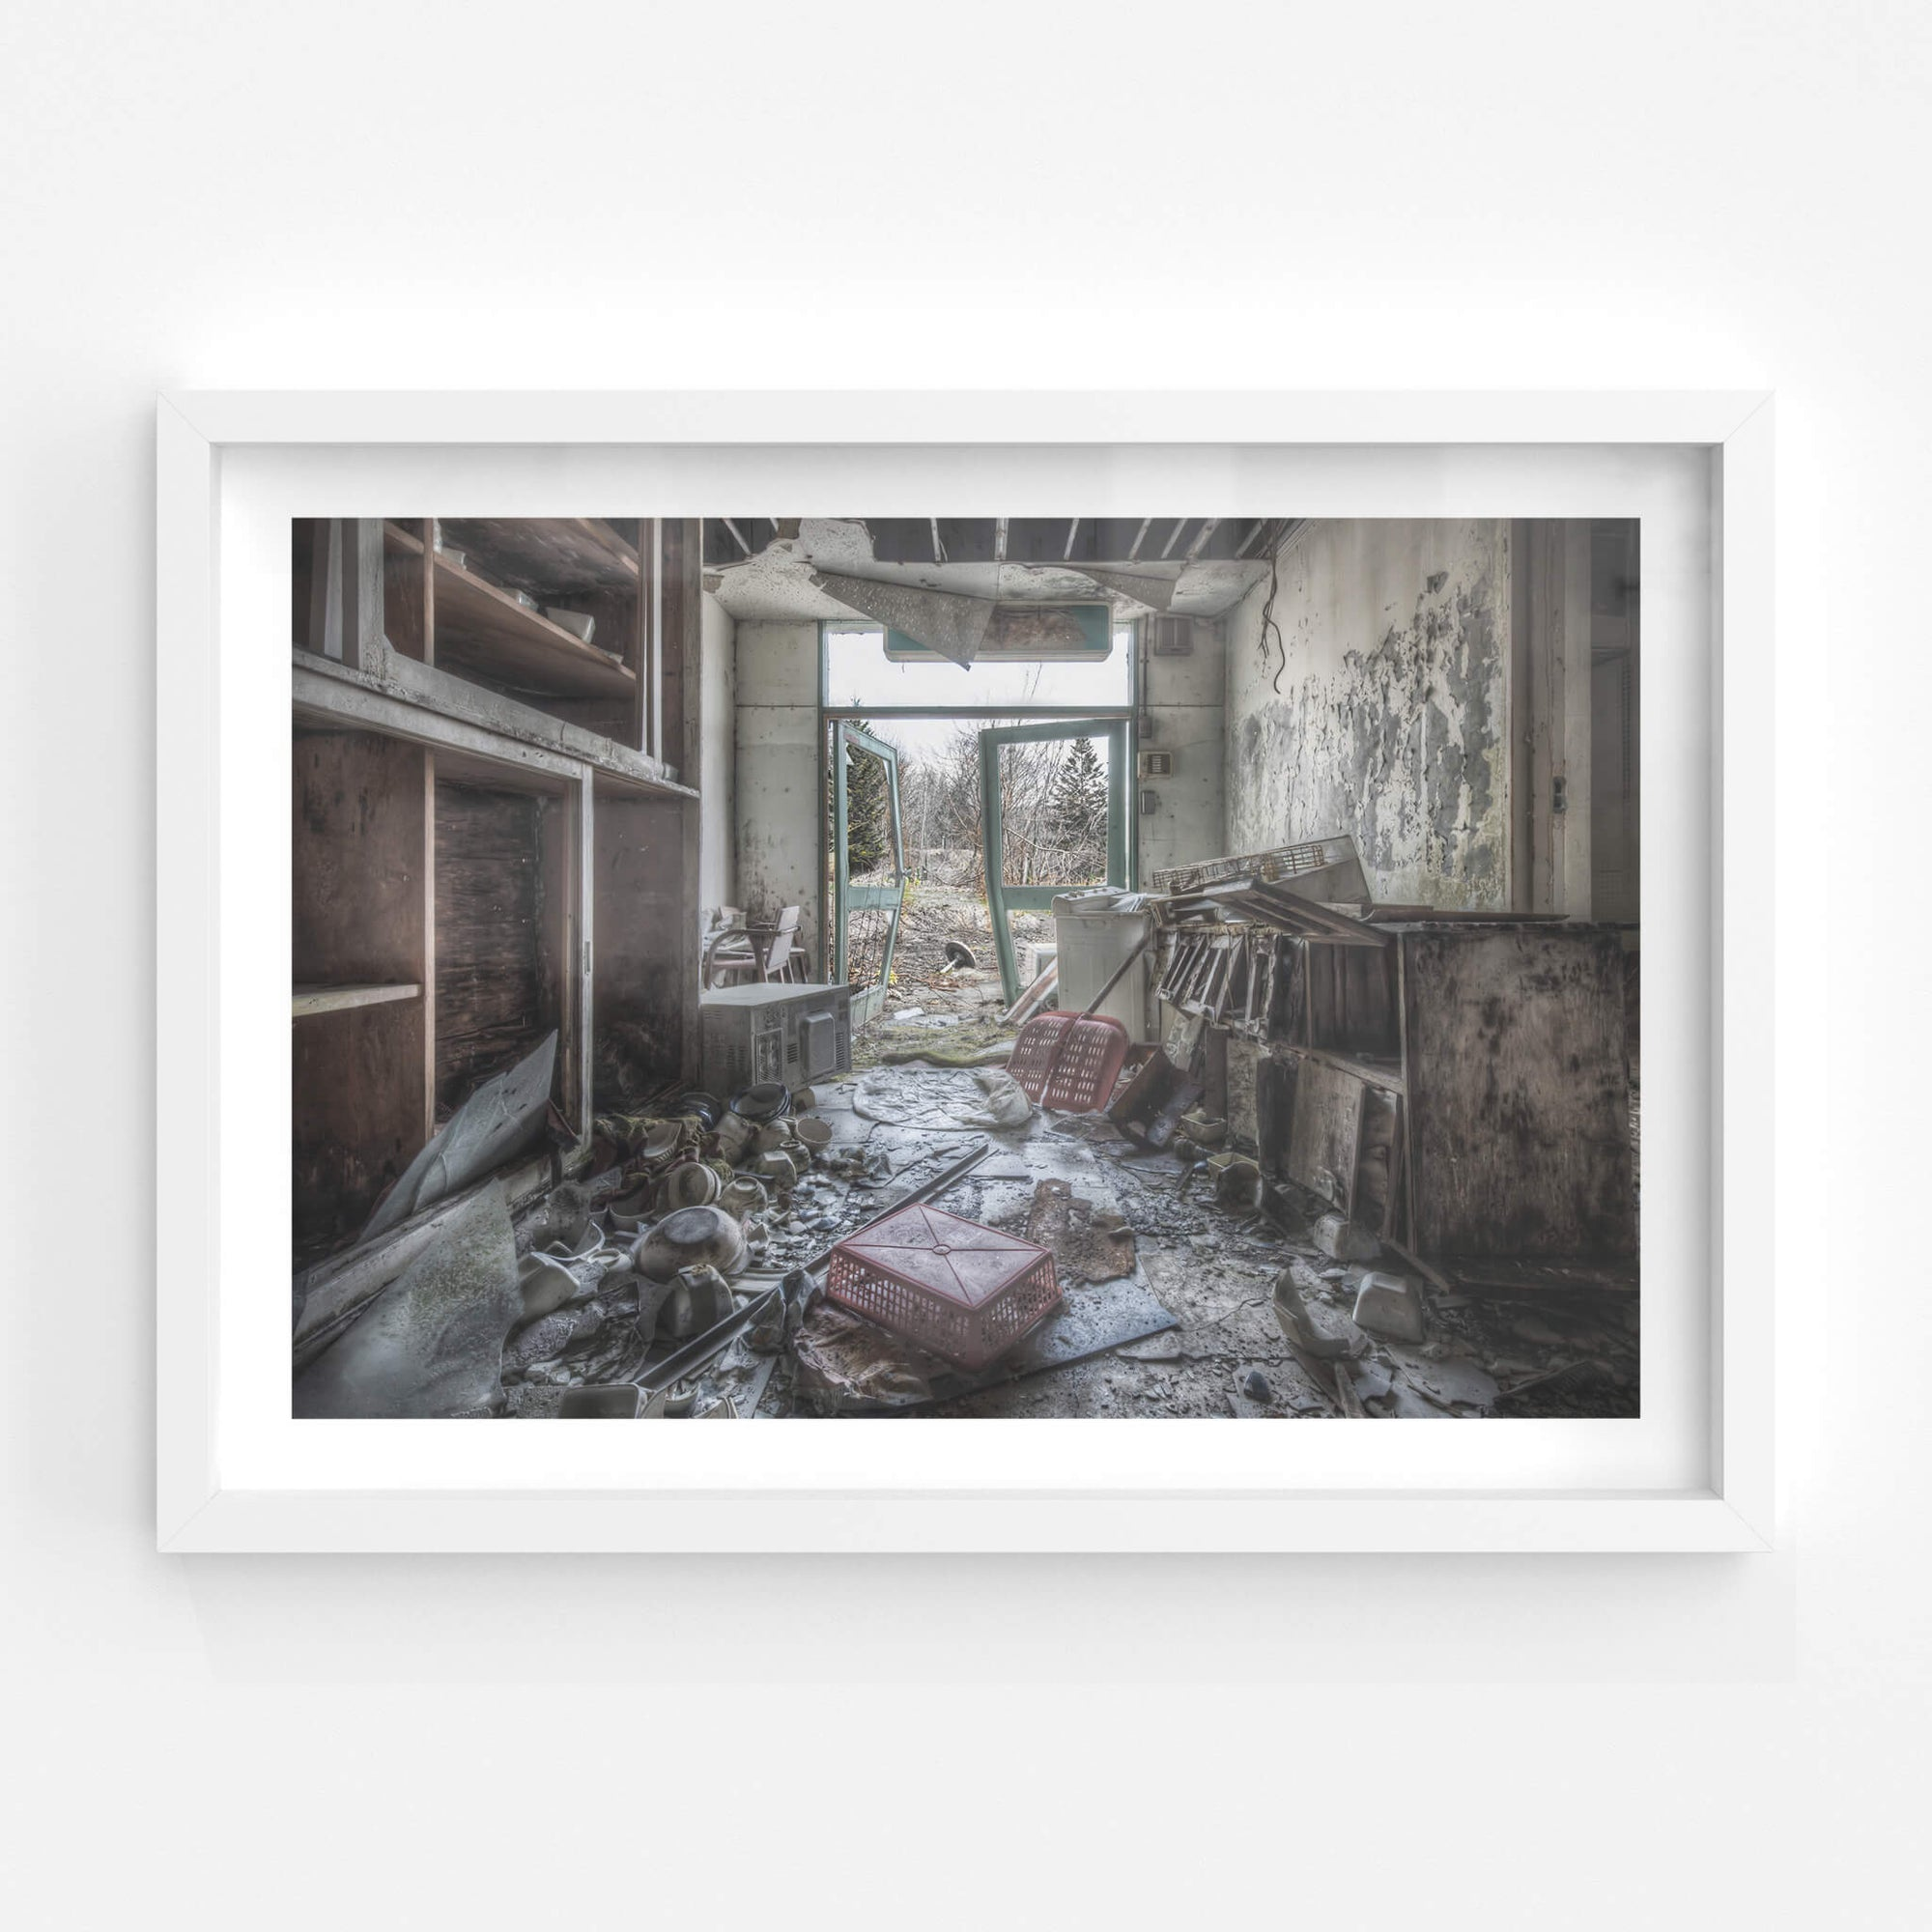 Dining Storage | Family School Fureai Fine Art Print - Lost Collective Shop